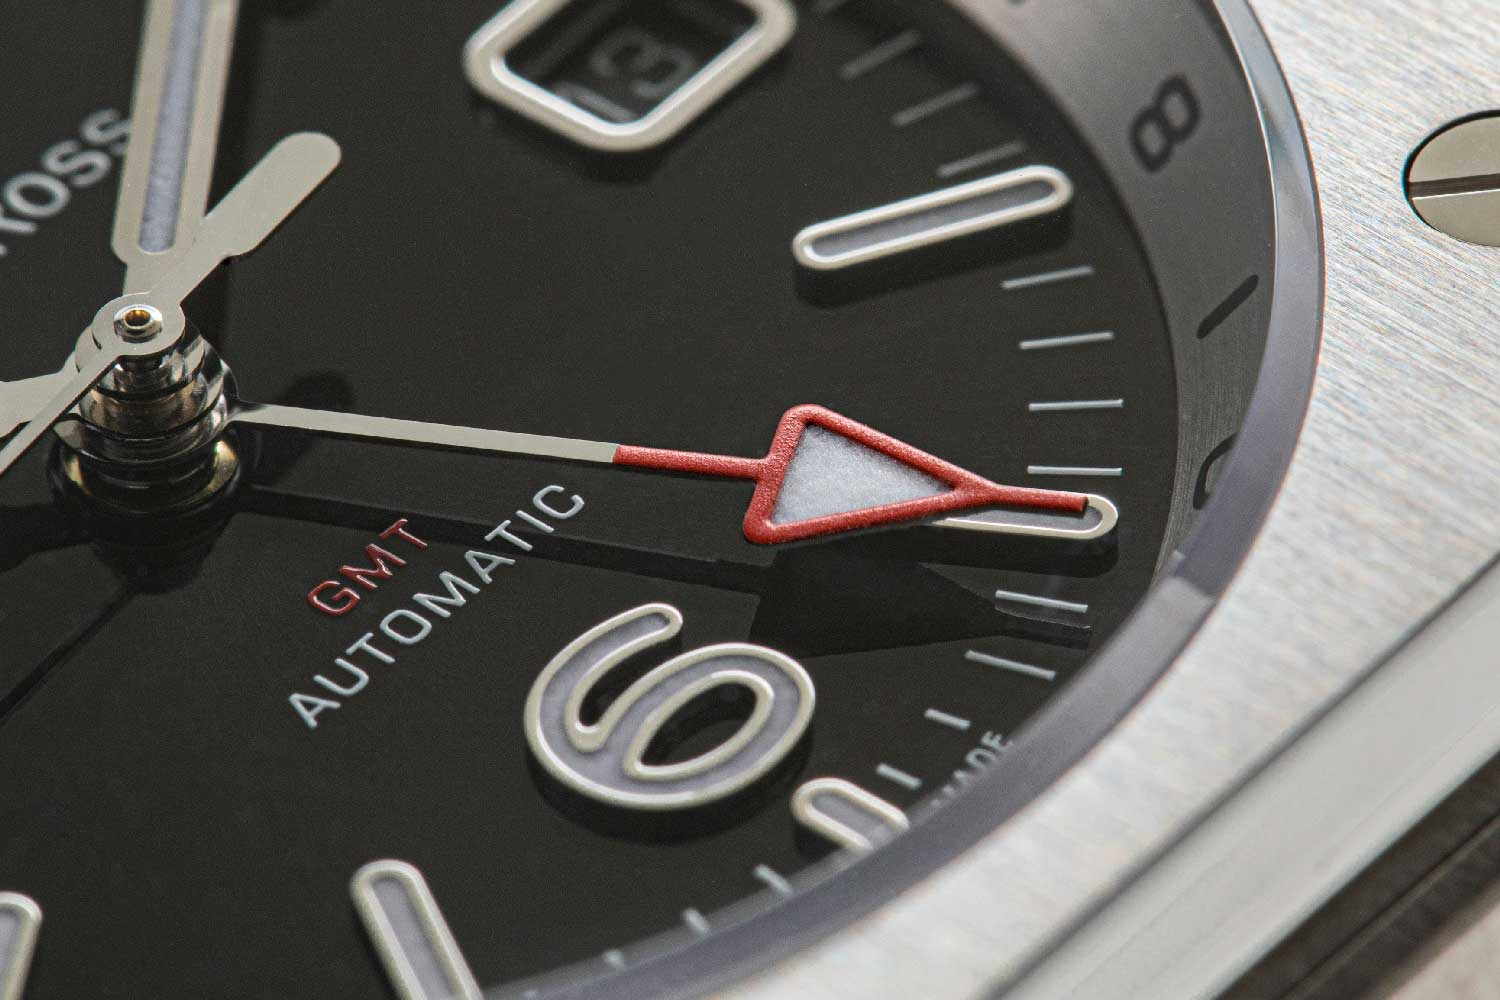 While the white hands on the main dial indicate the time at the wearer's current location, the red arrow-hand on the 24-hour graduated inner bezel shows the time in the country of origin. (© Revolution)